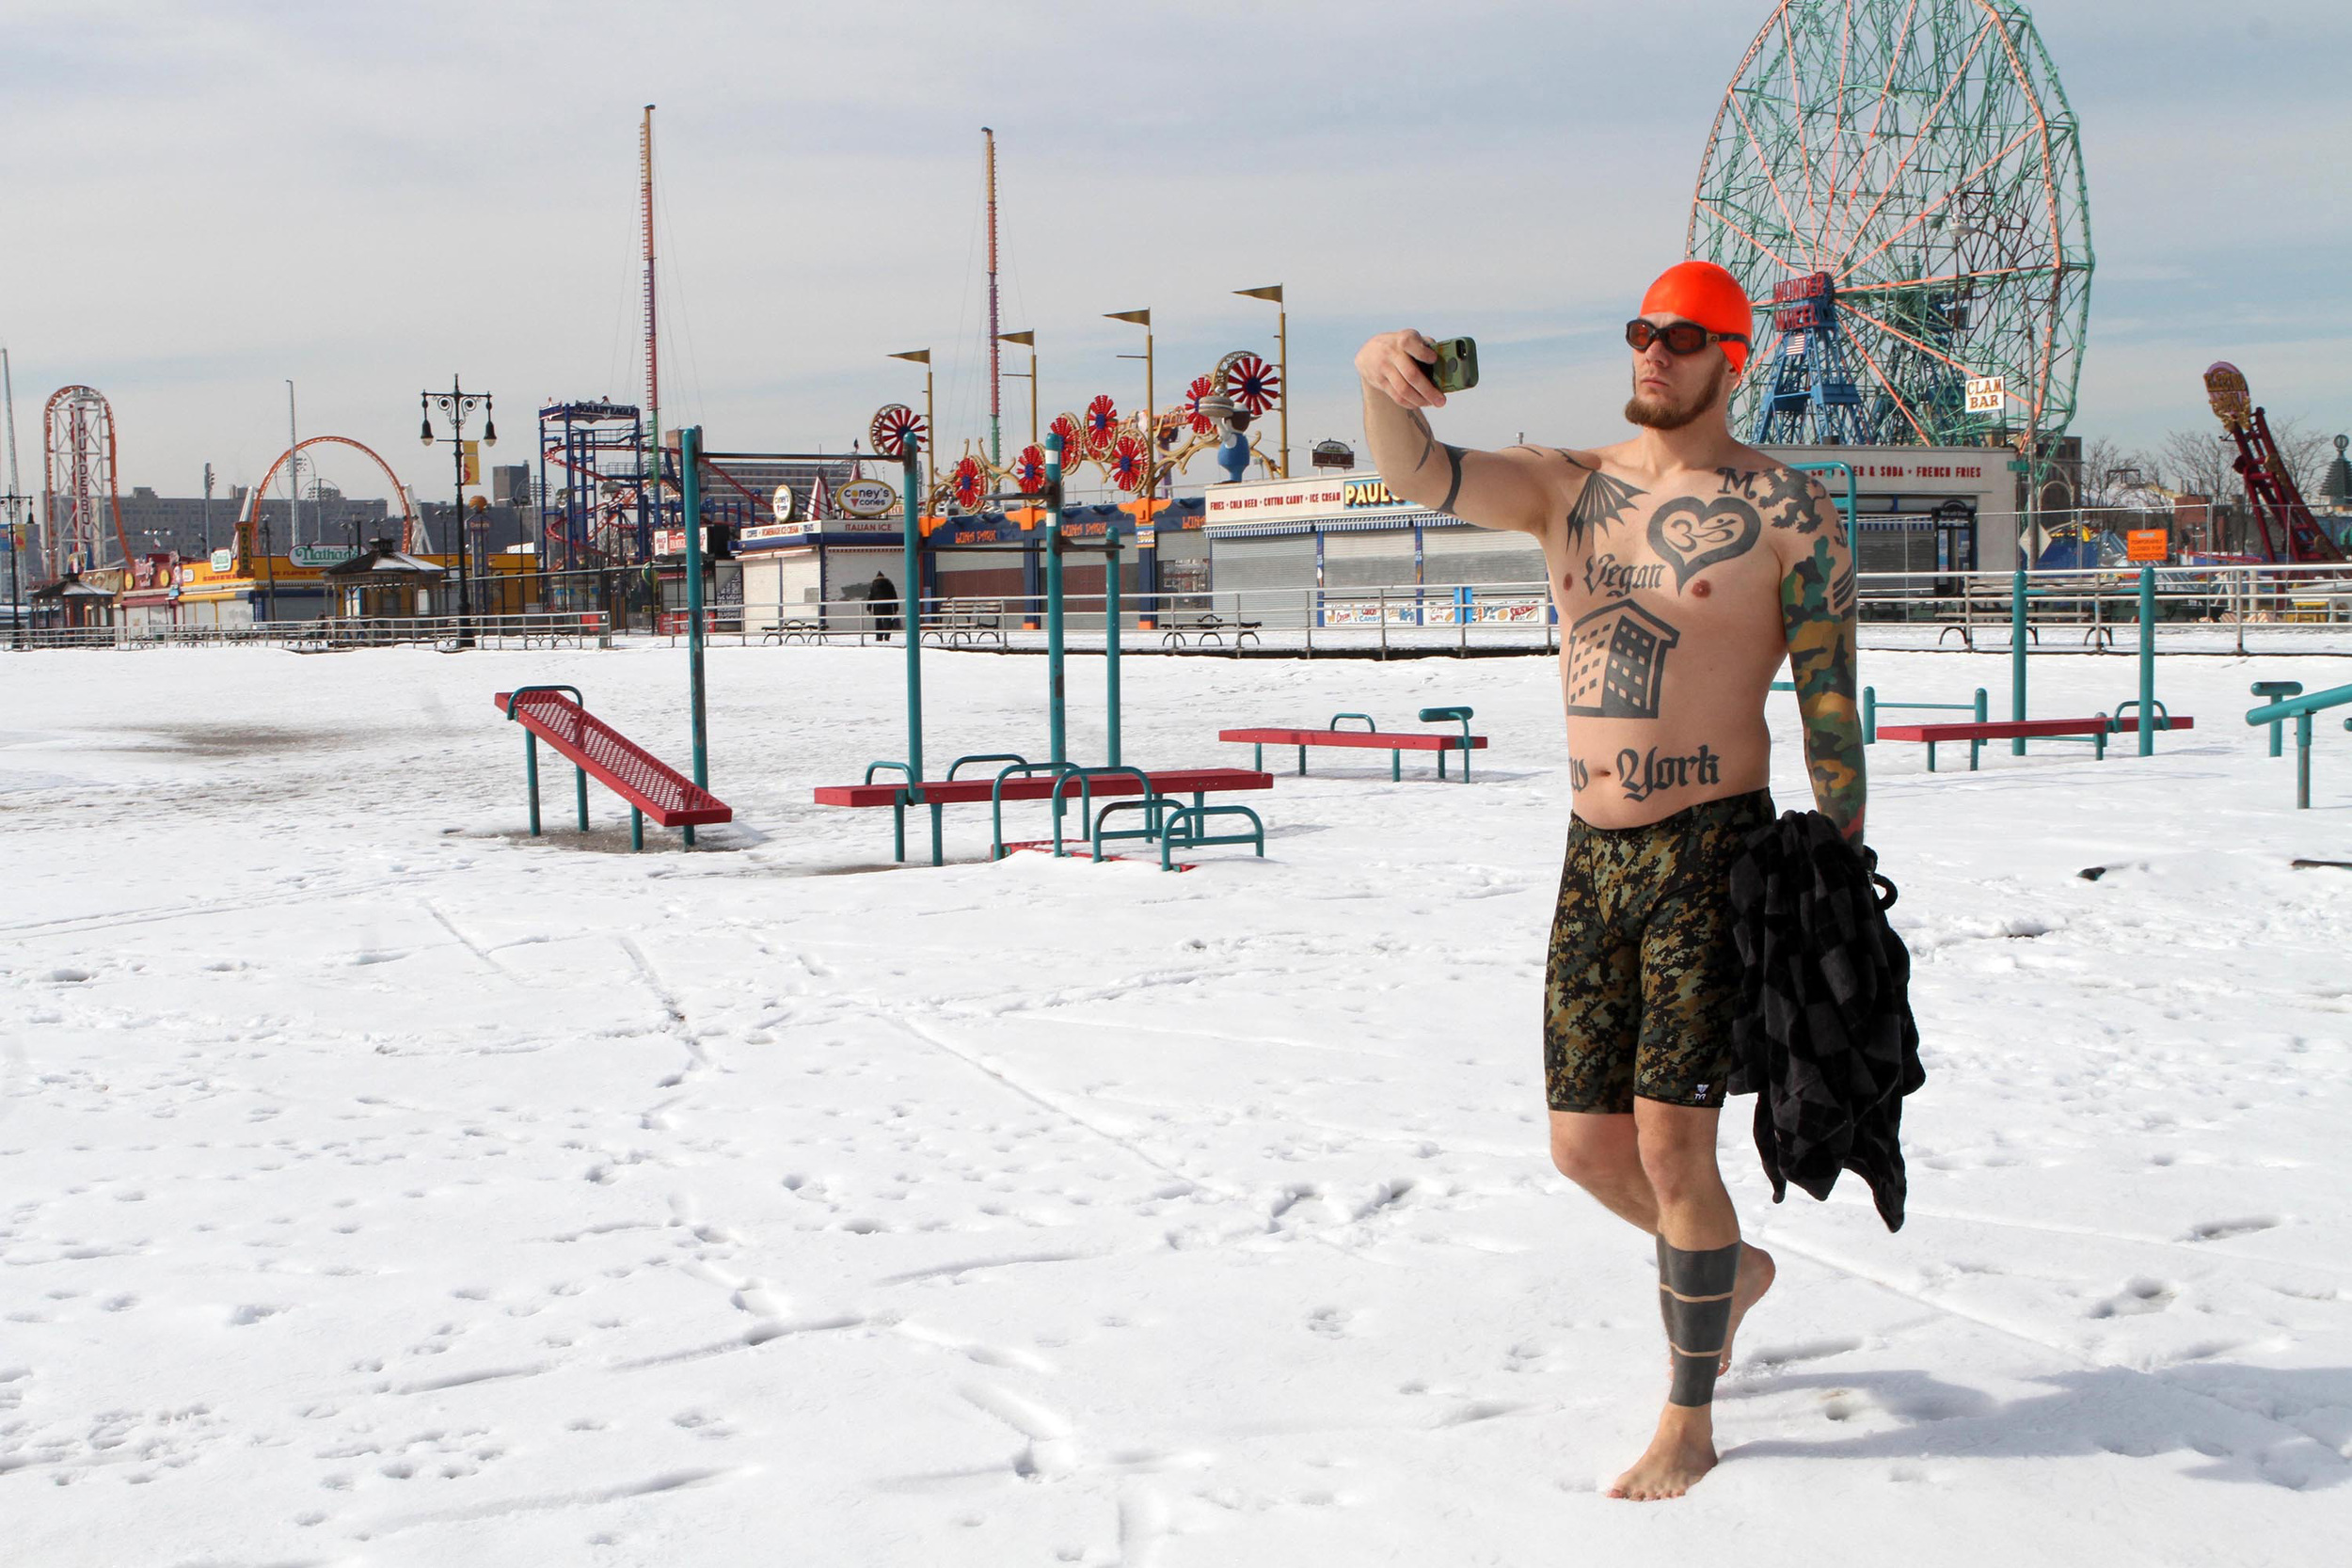 Coney Island Polar bear club goes out for their weekly swim. Member of poplar bear club takes a selfie before he jumps into the frigid water.